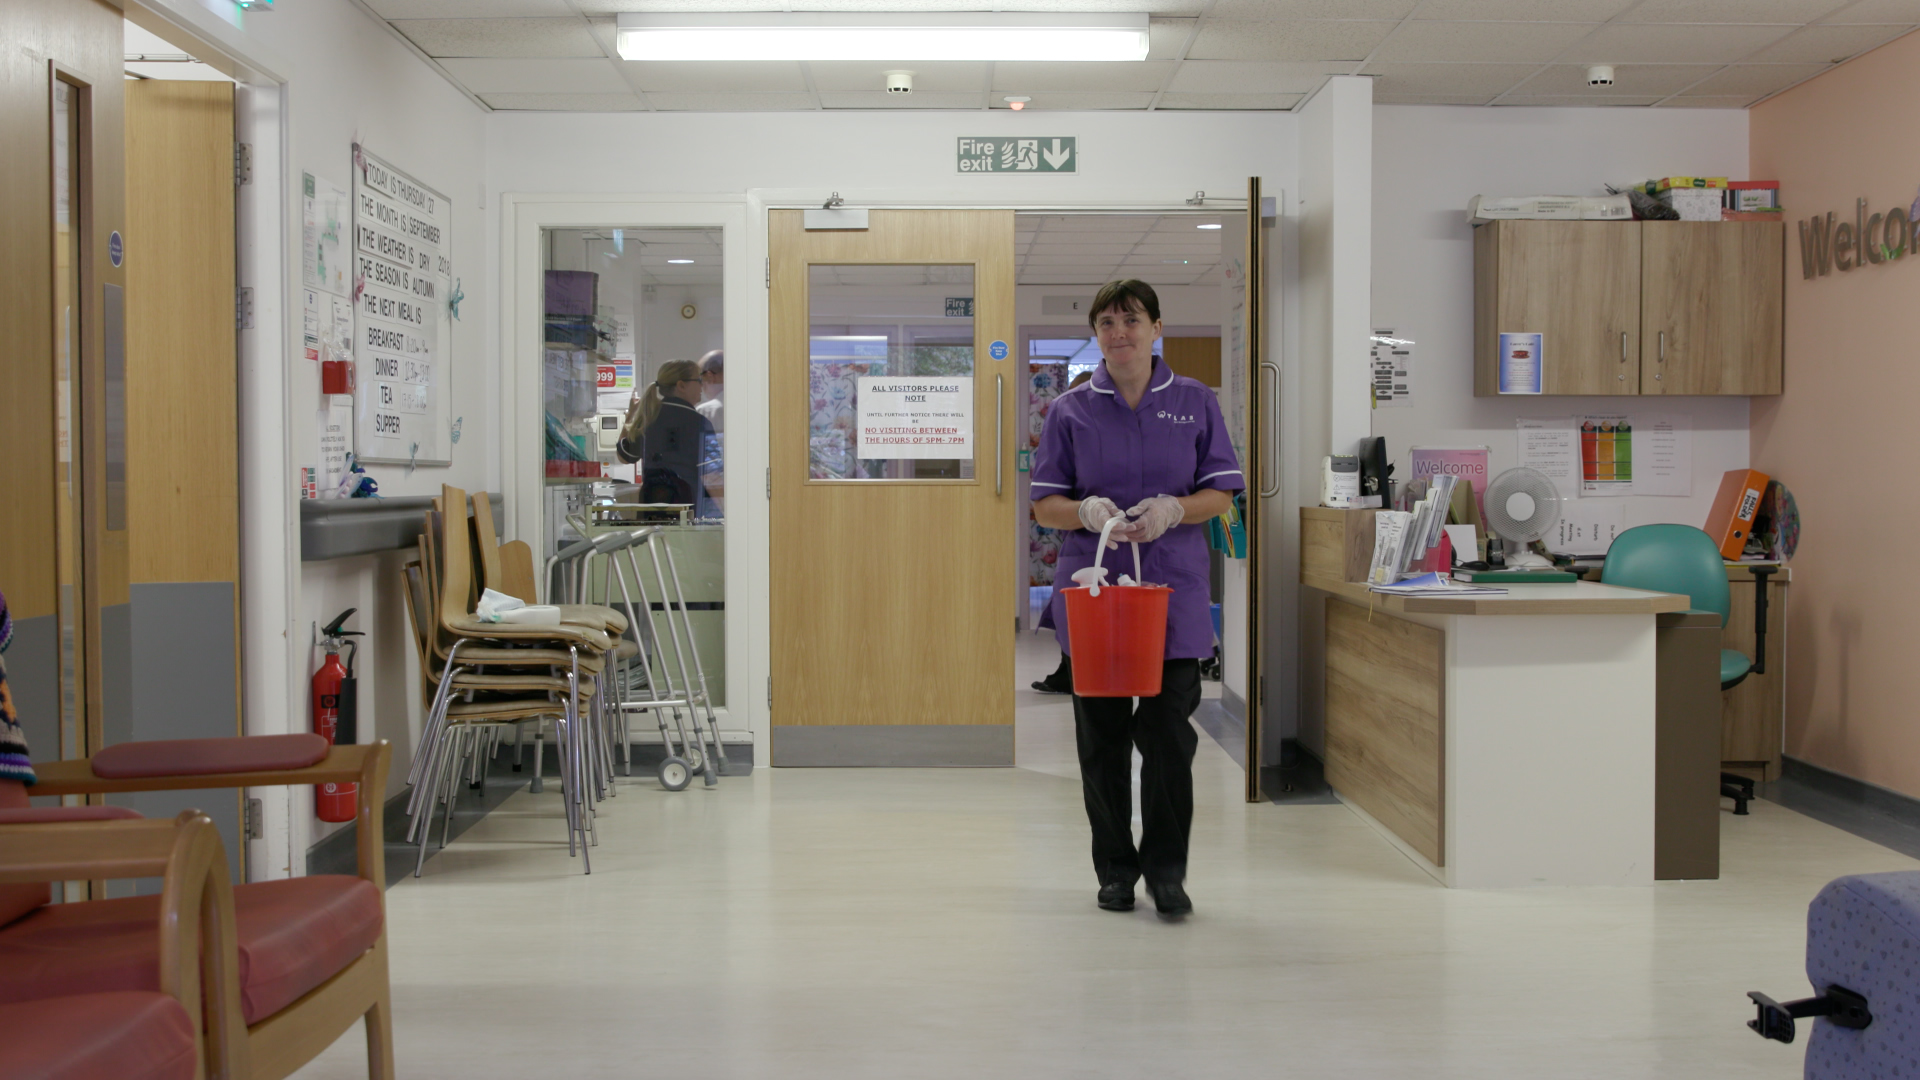 Soft FM Domestic with bucket on ward